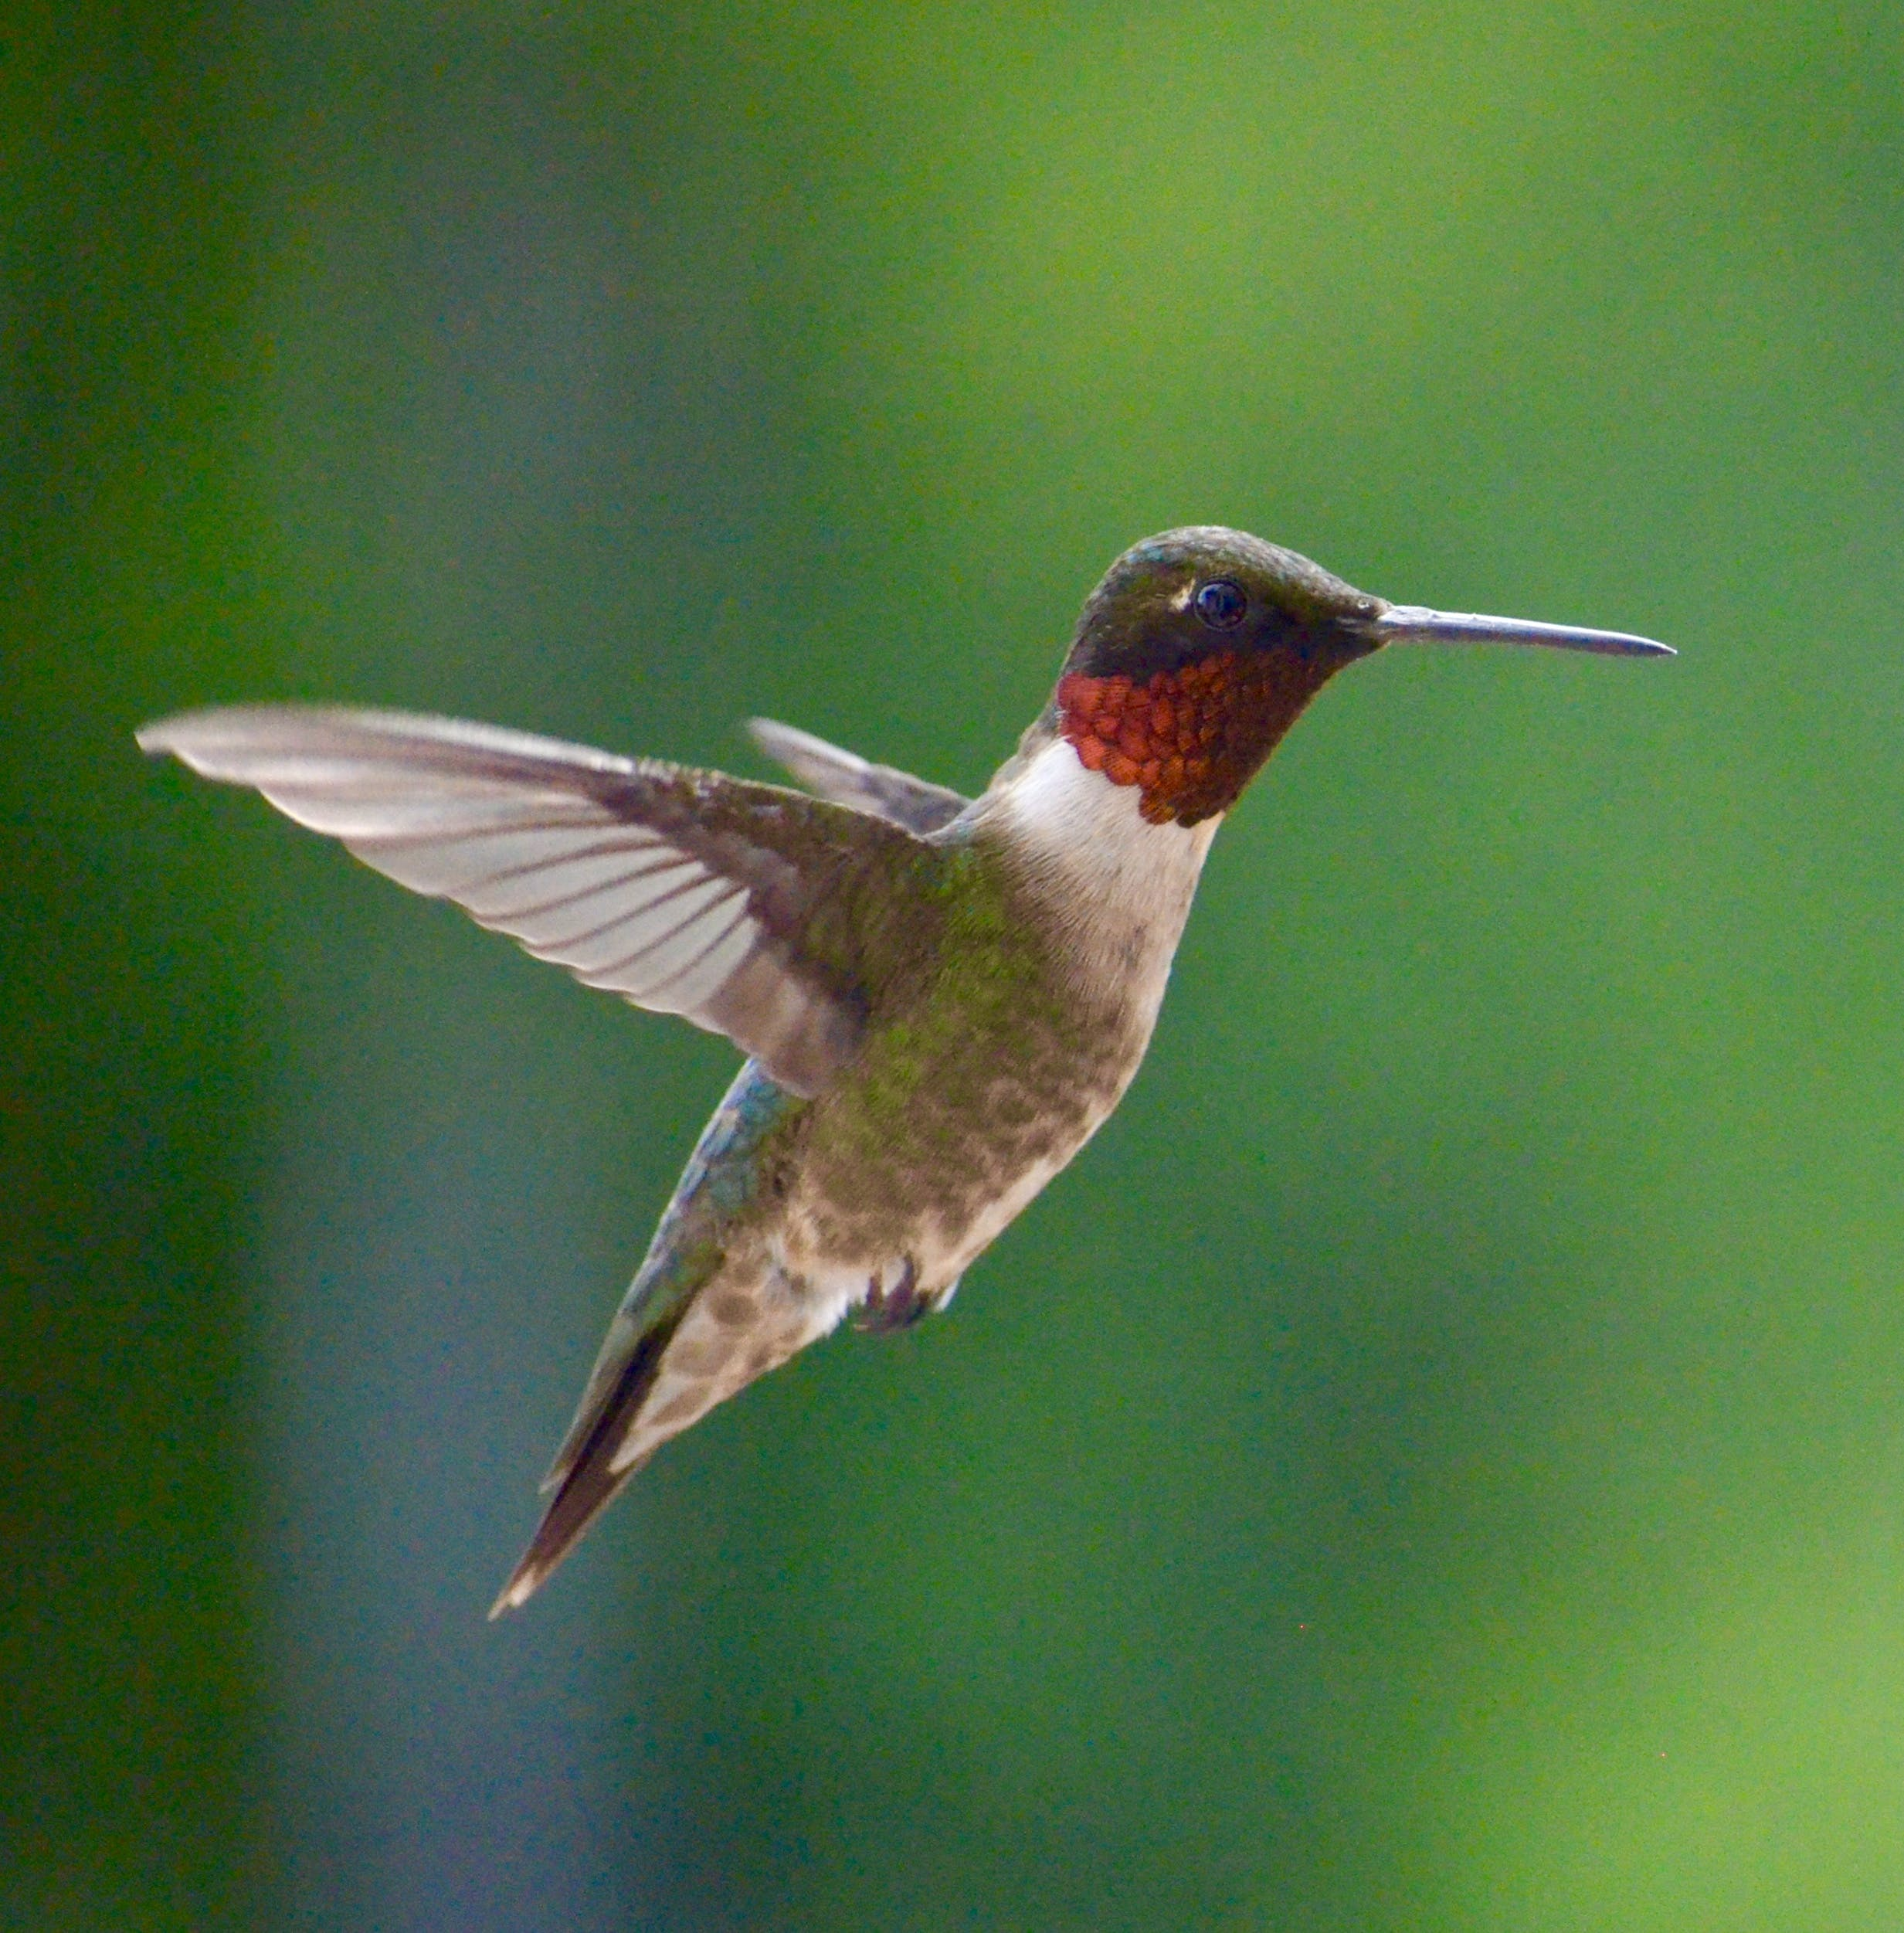 Free stock photo of nature, bird, garden, hummingbird